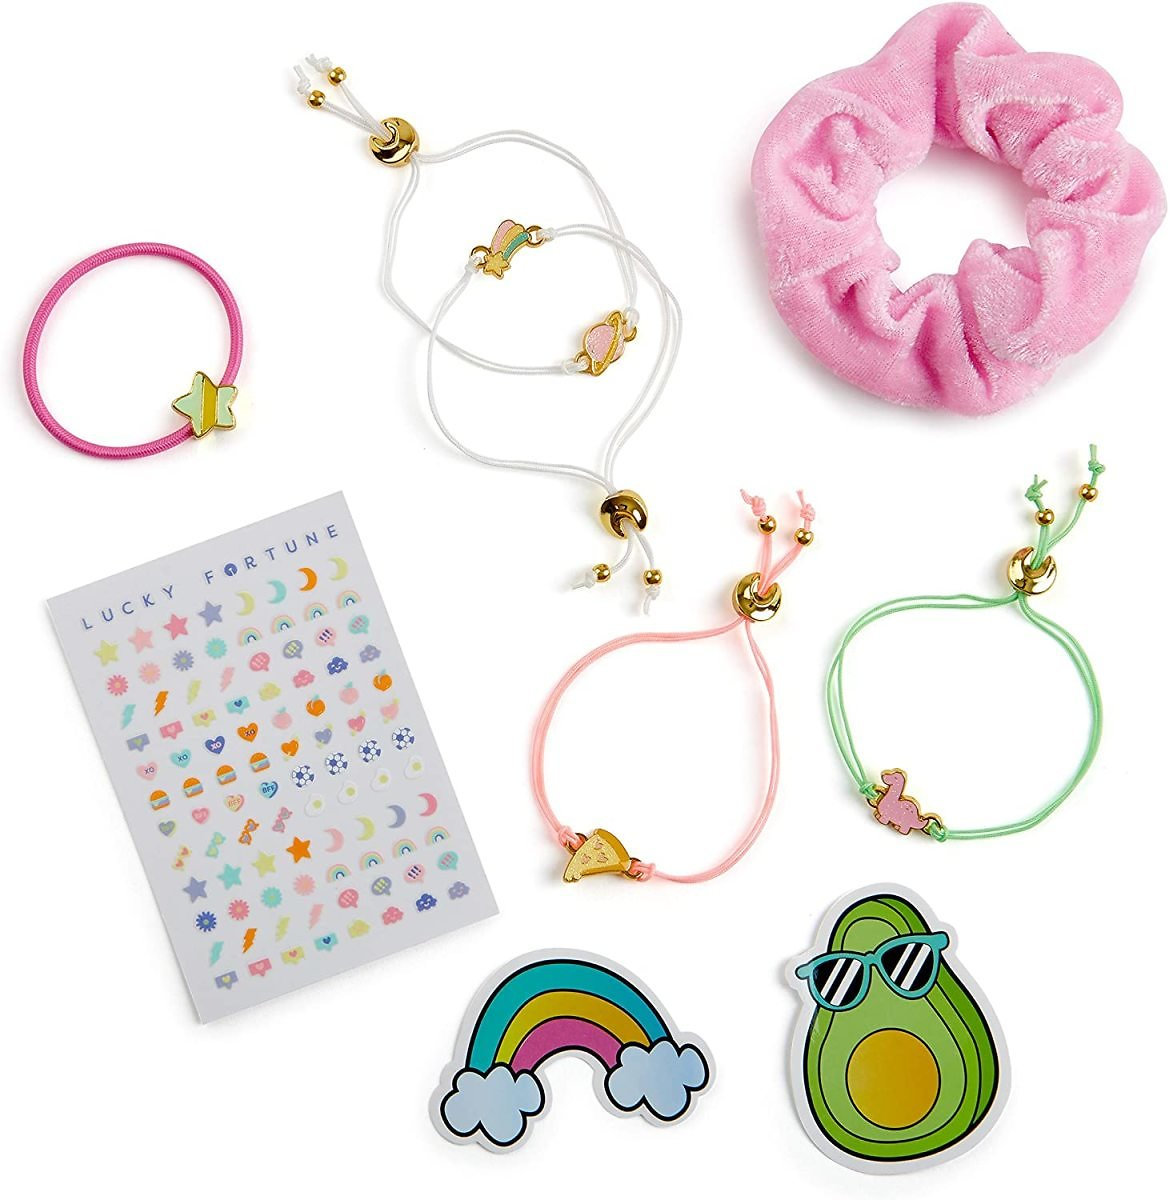 WowWee Lucky Fortune Magic Series - Color Change Elastic Bracelet and Accessories - Lucky Bundle